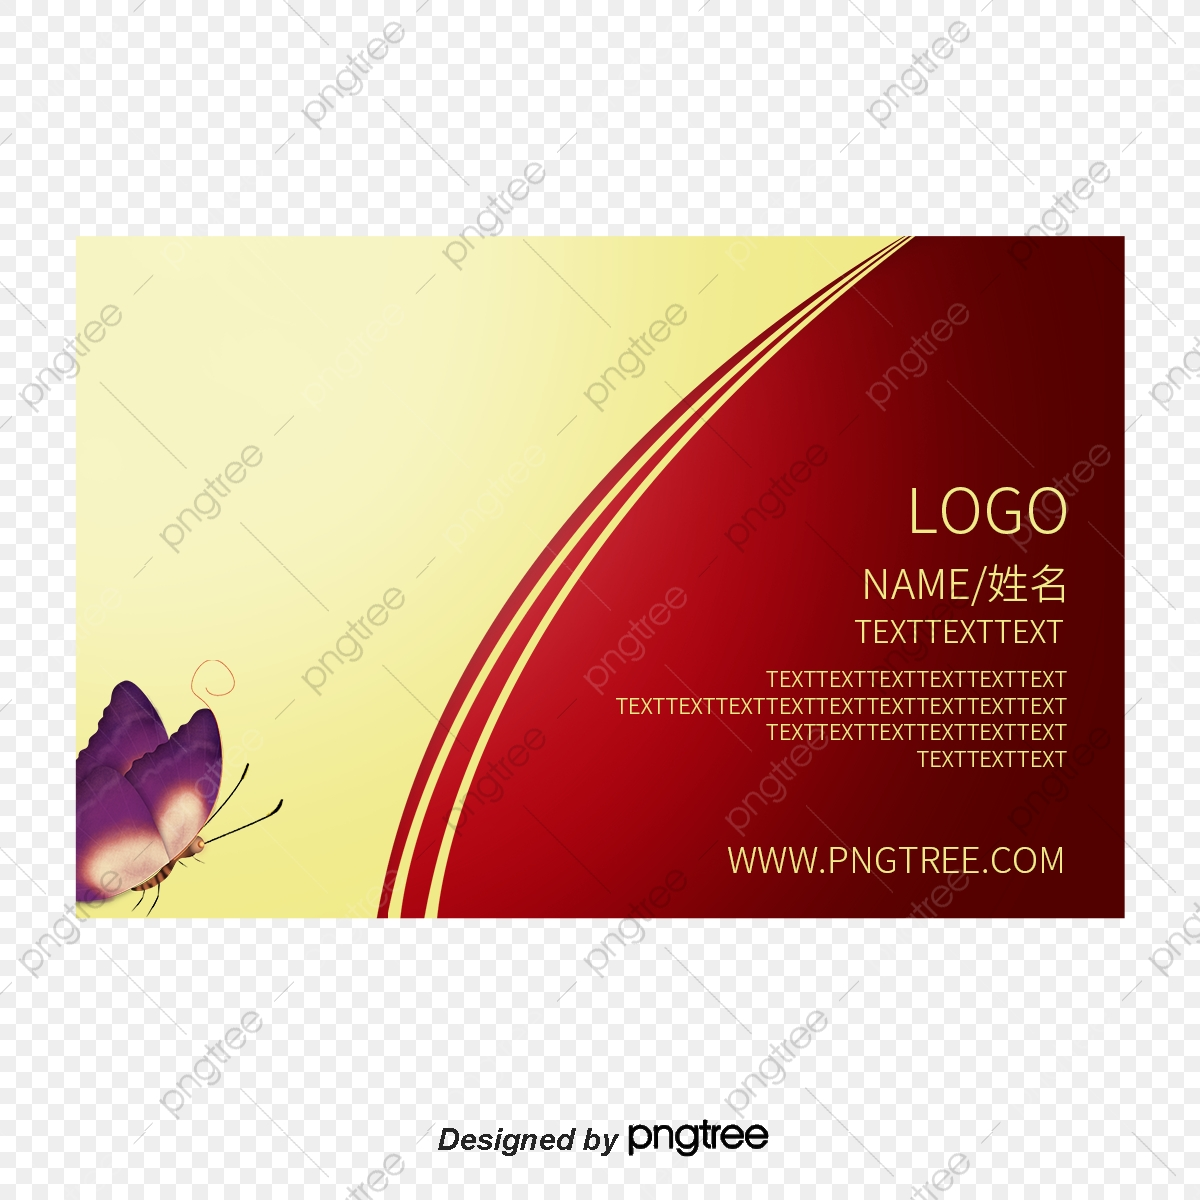 Nail Business Card Beauty Parlor Card Membership Card Png Transparent Clipart Image And Psd File For Free Download